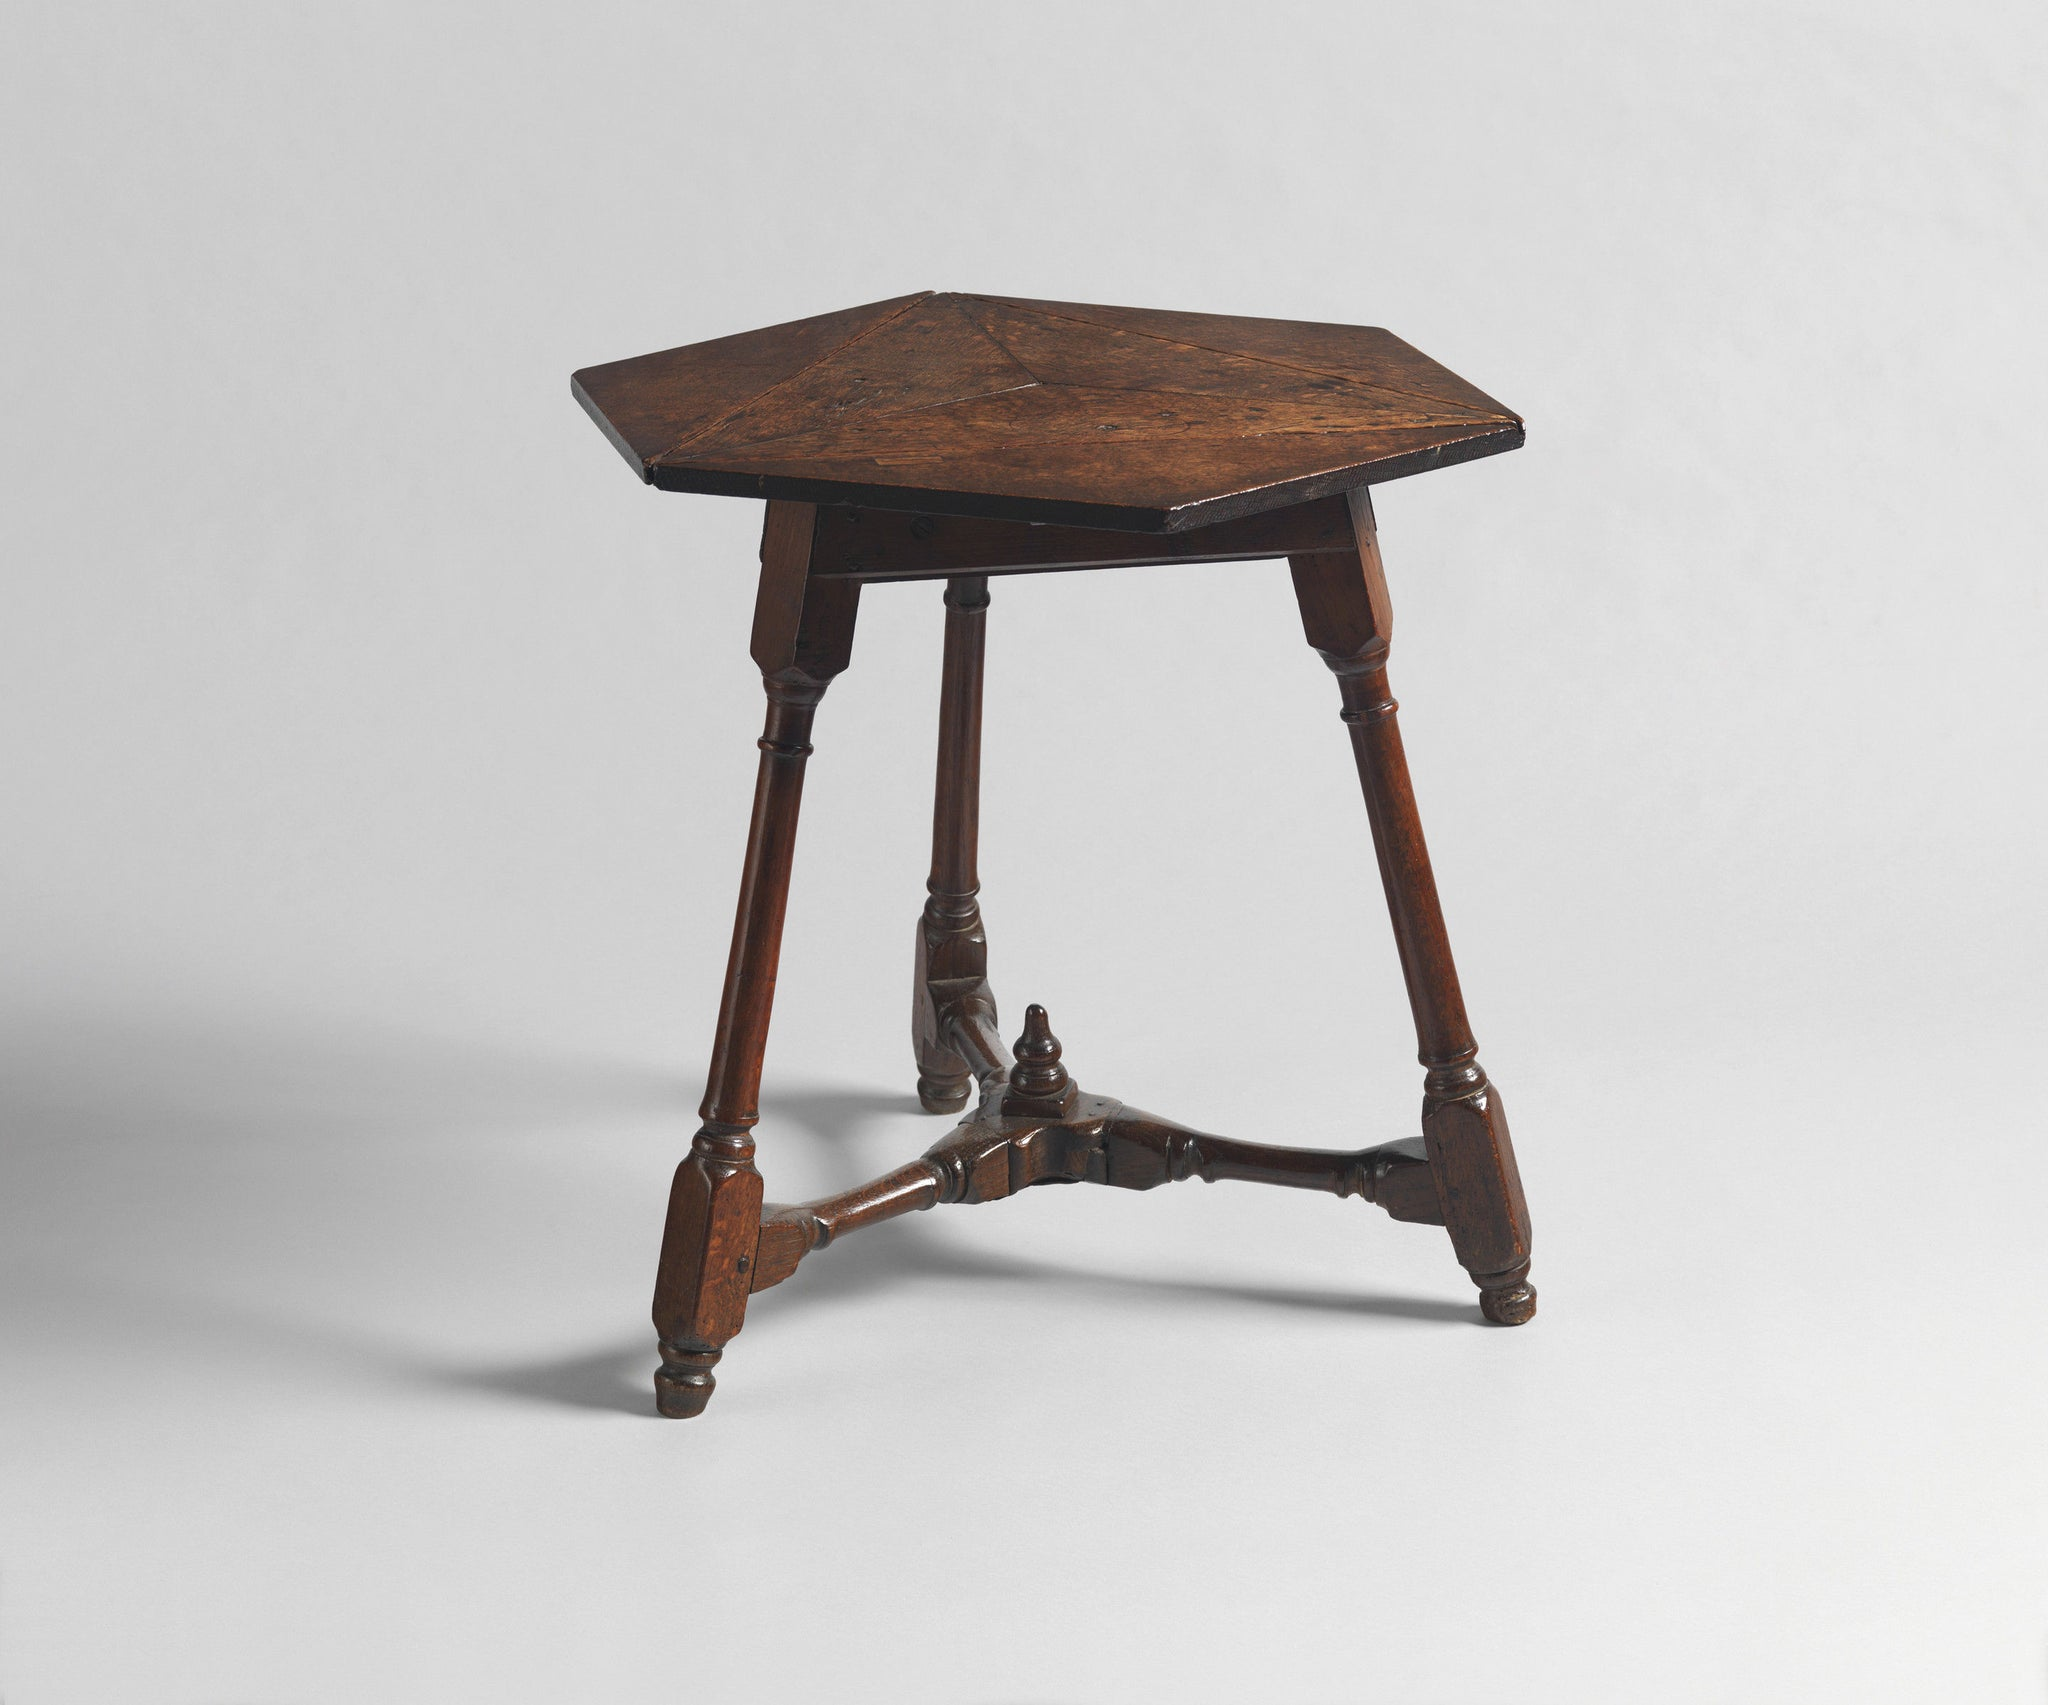 Early Hexagonal Drop Leaf Leaf Table